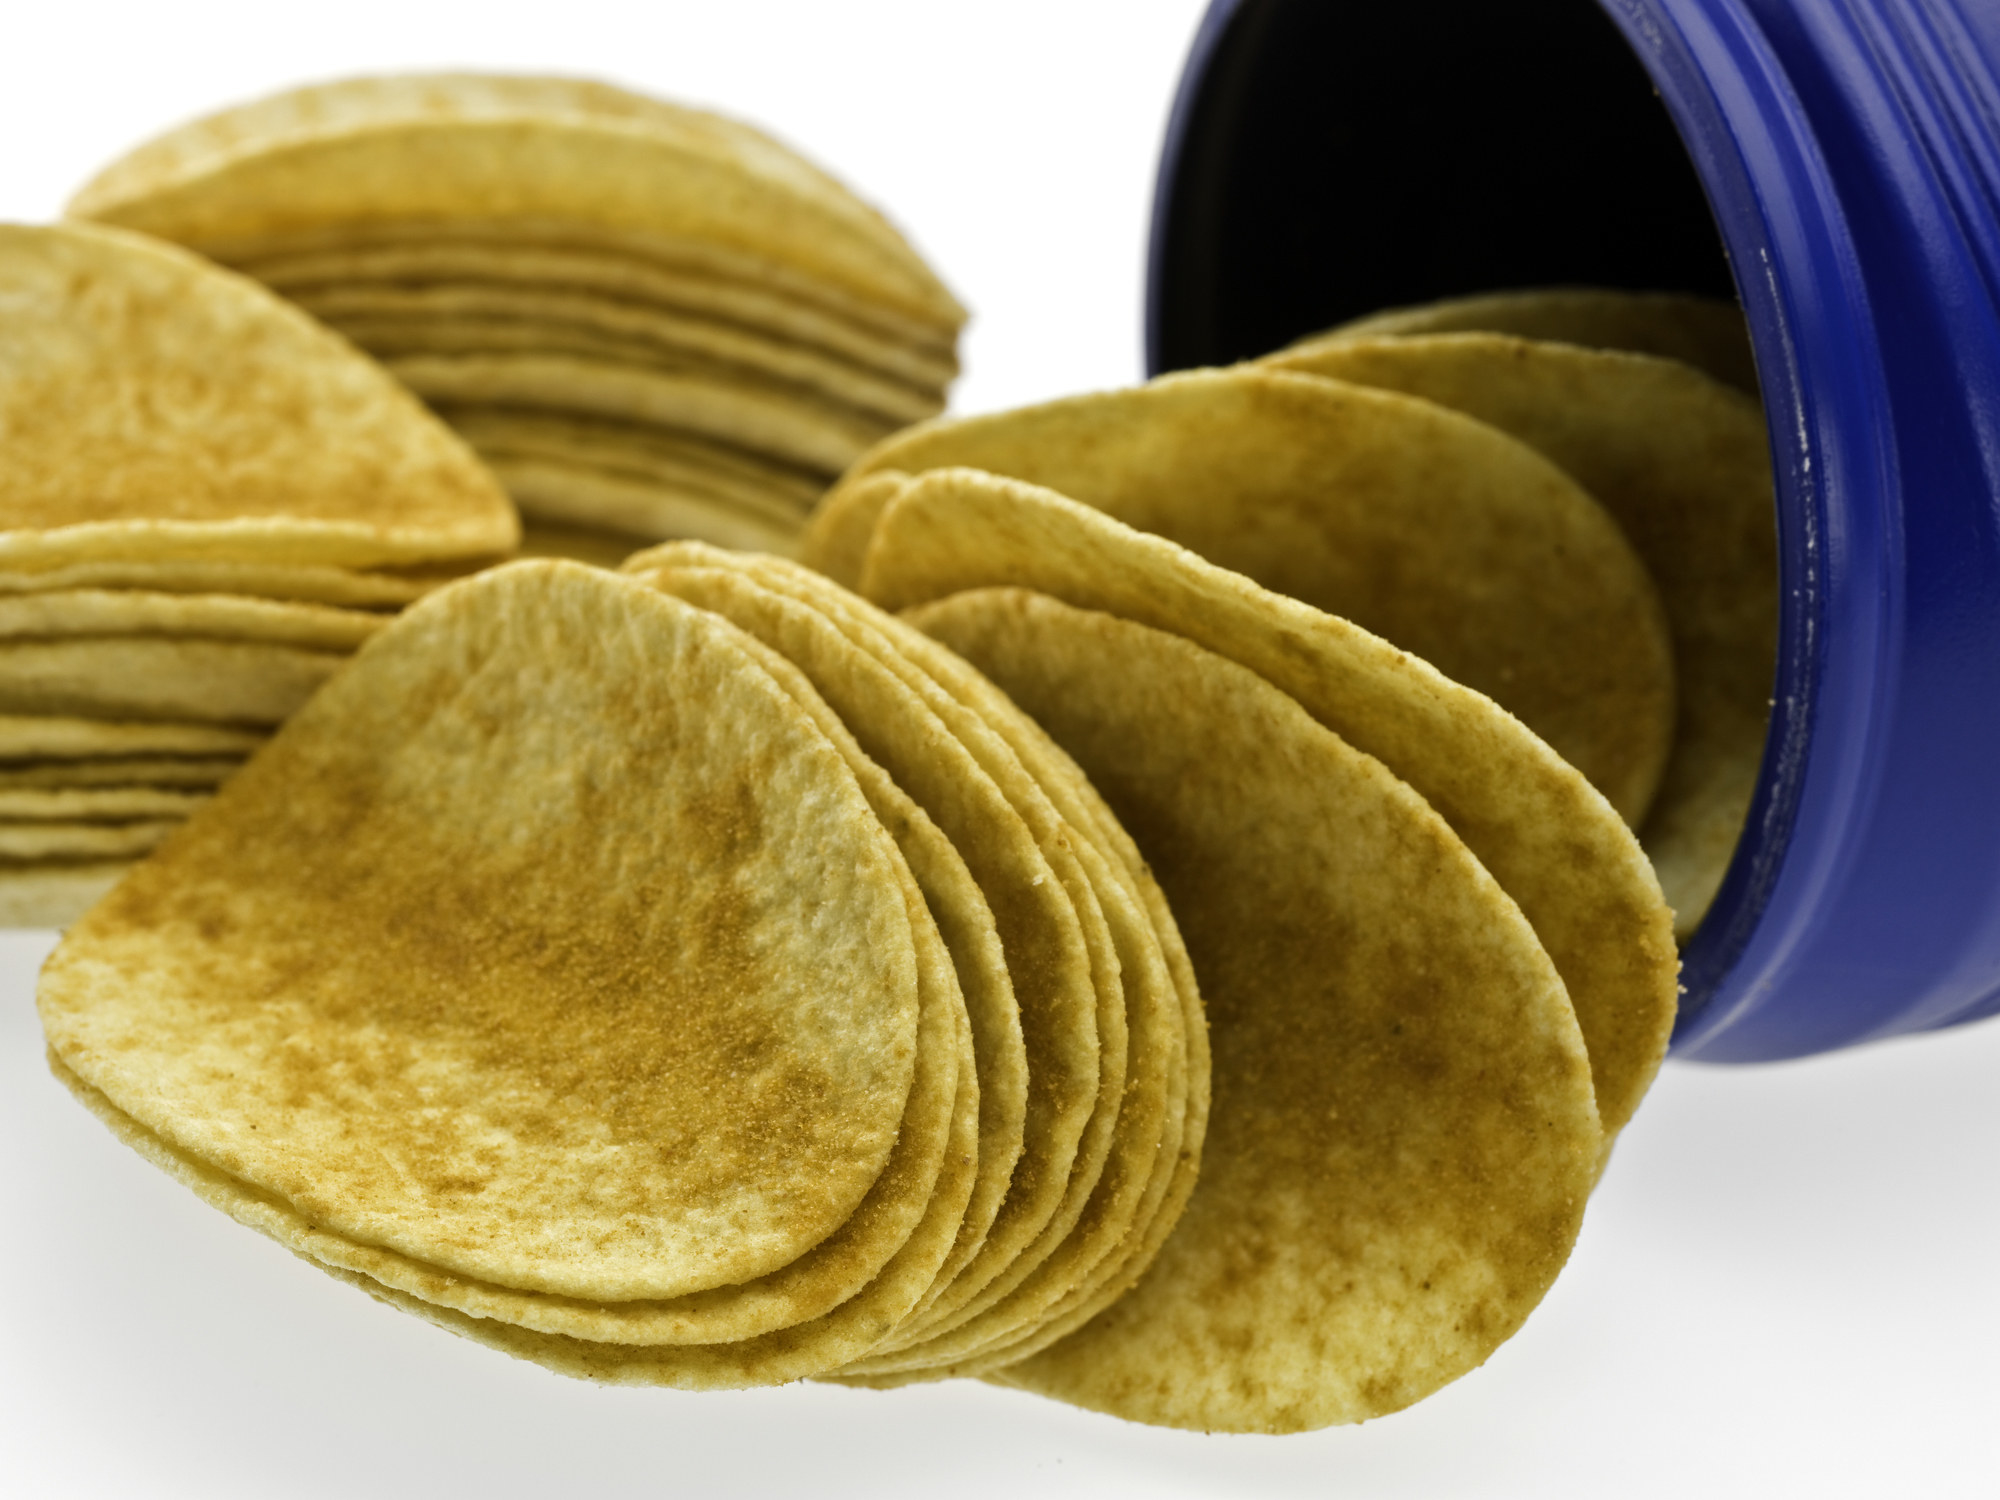 a stack of potato chips spilling out of a can